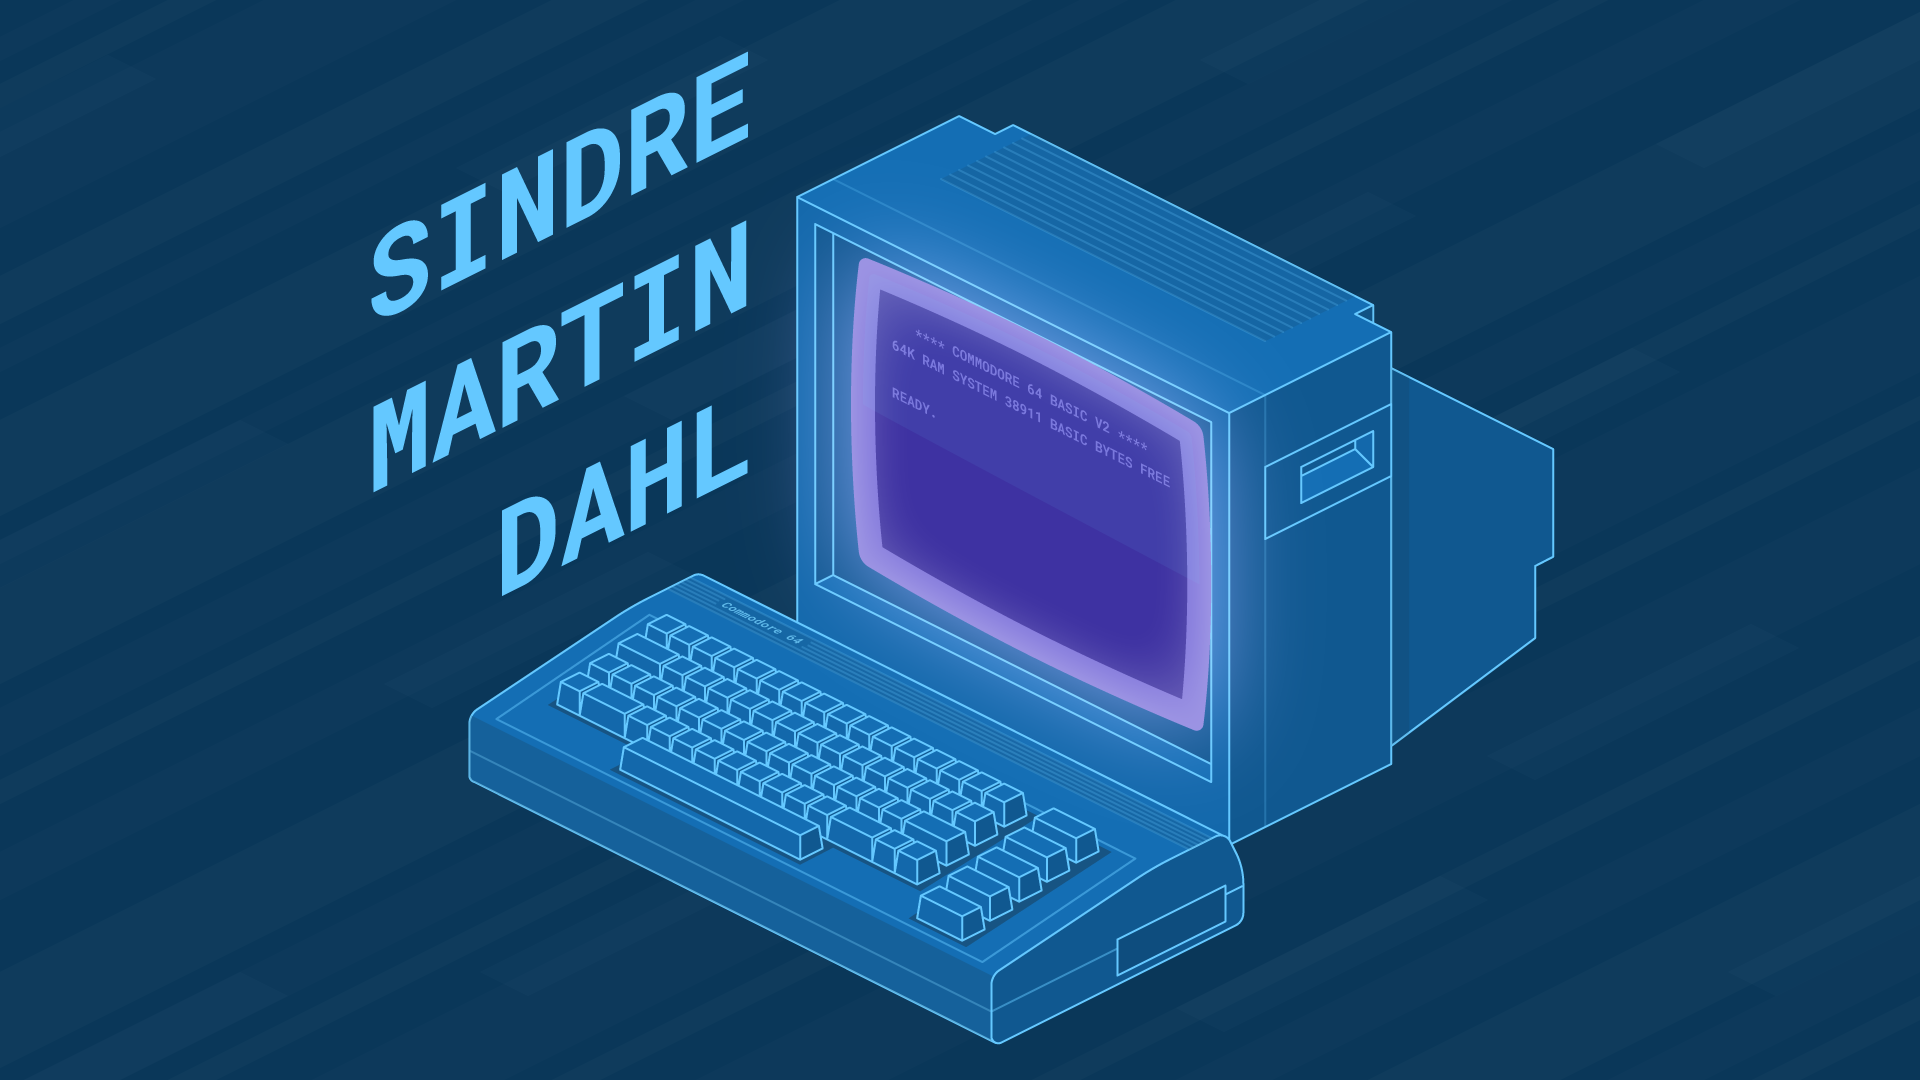 Illustration of Commodore 64 desktop computer and monitor